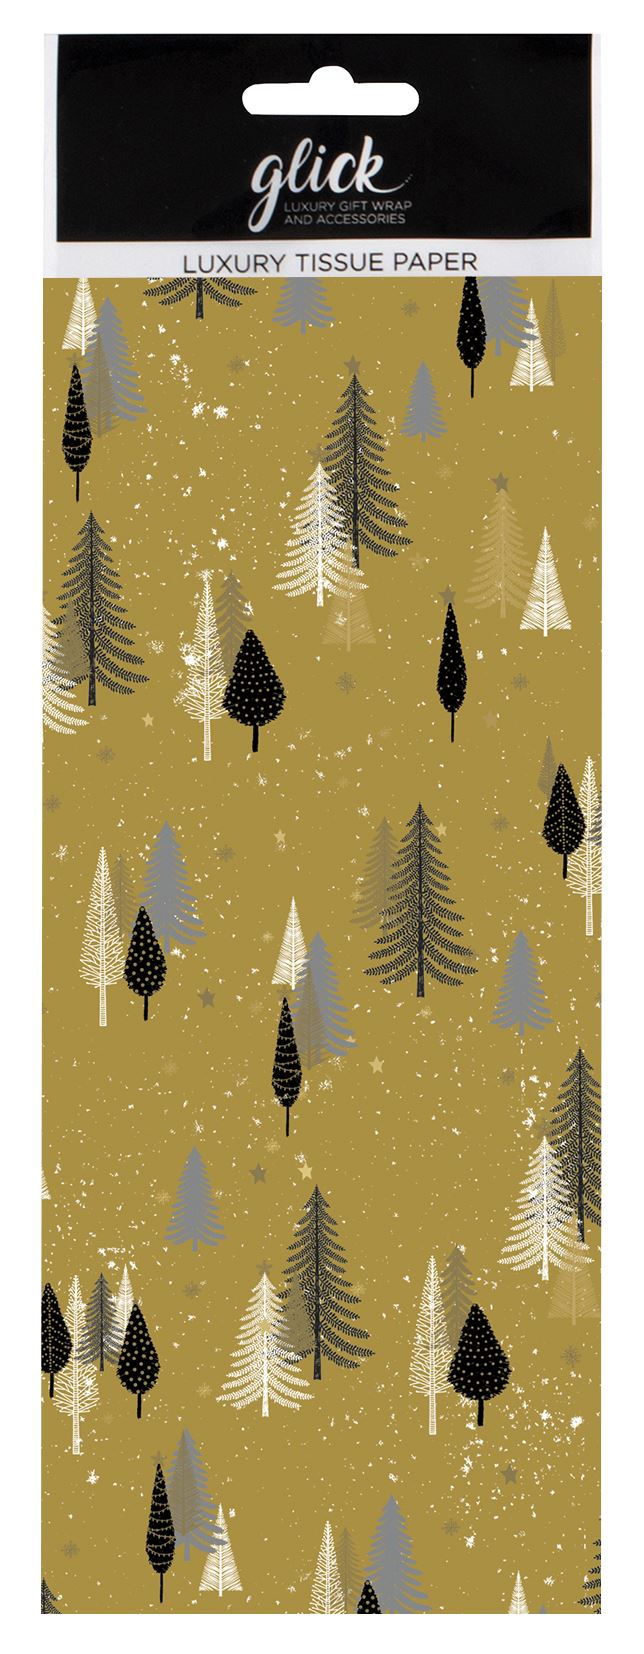 Luxury Gold Tissue Paper with Christmas Trees